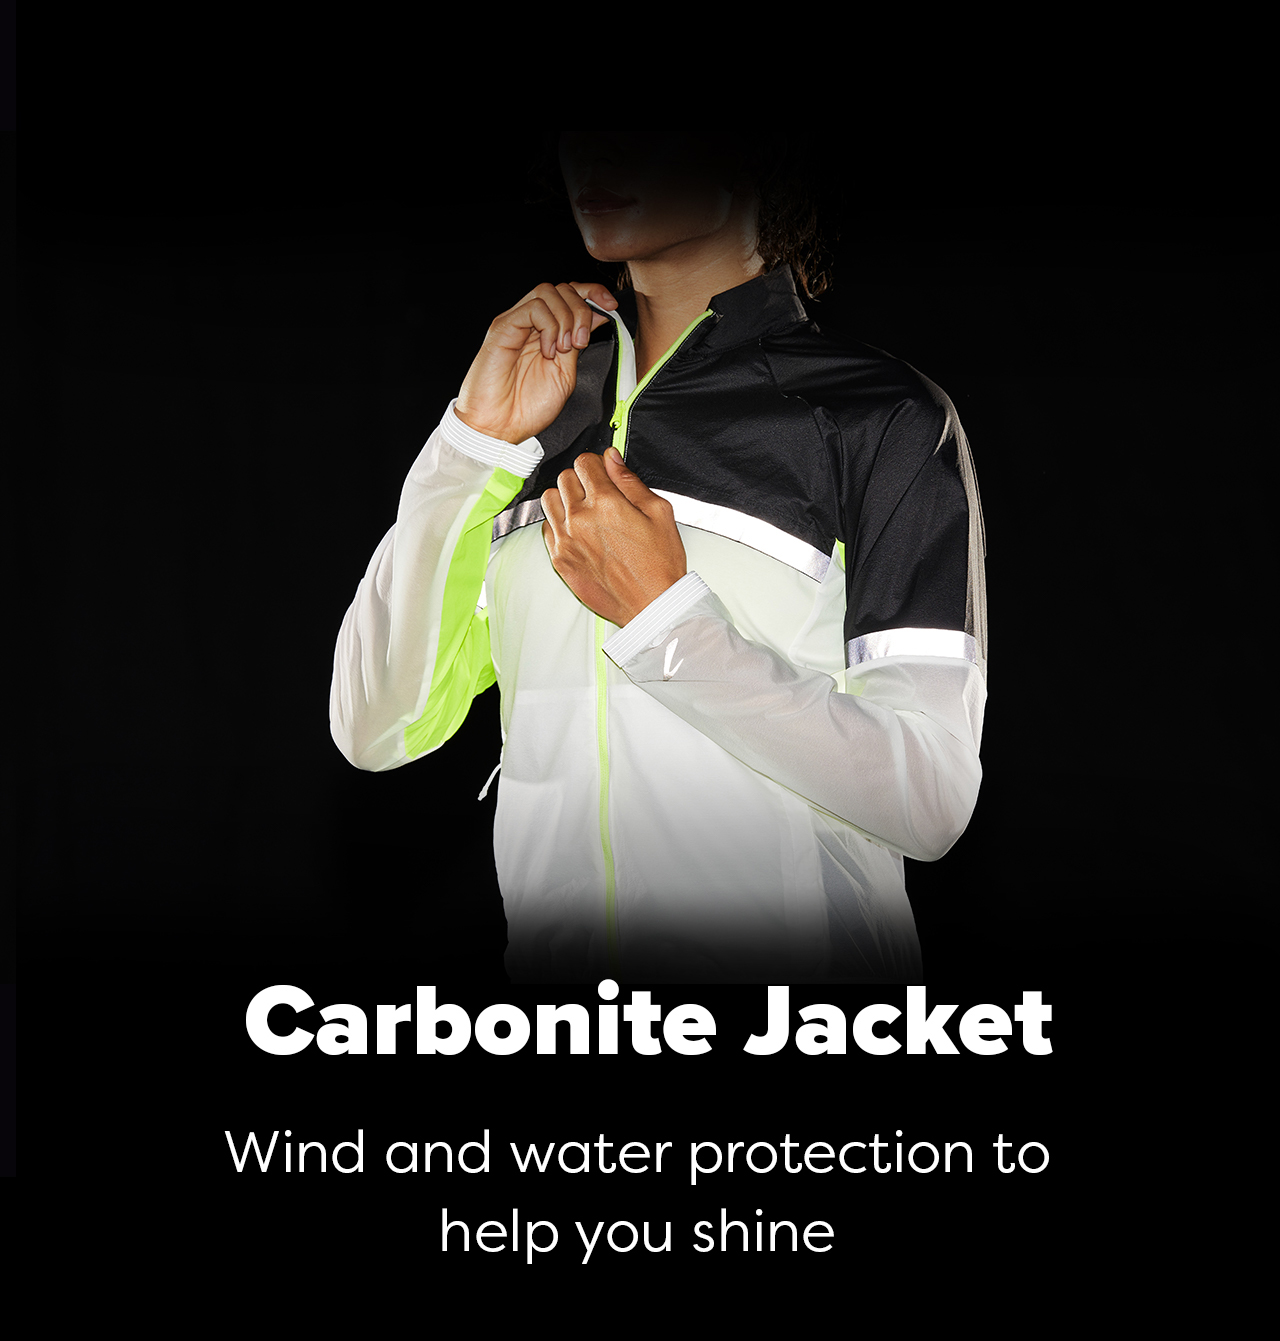 Carbonite Jacket - Wind and water protection to help you shine